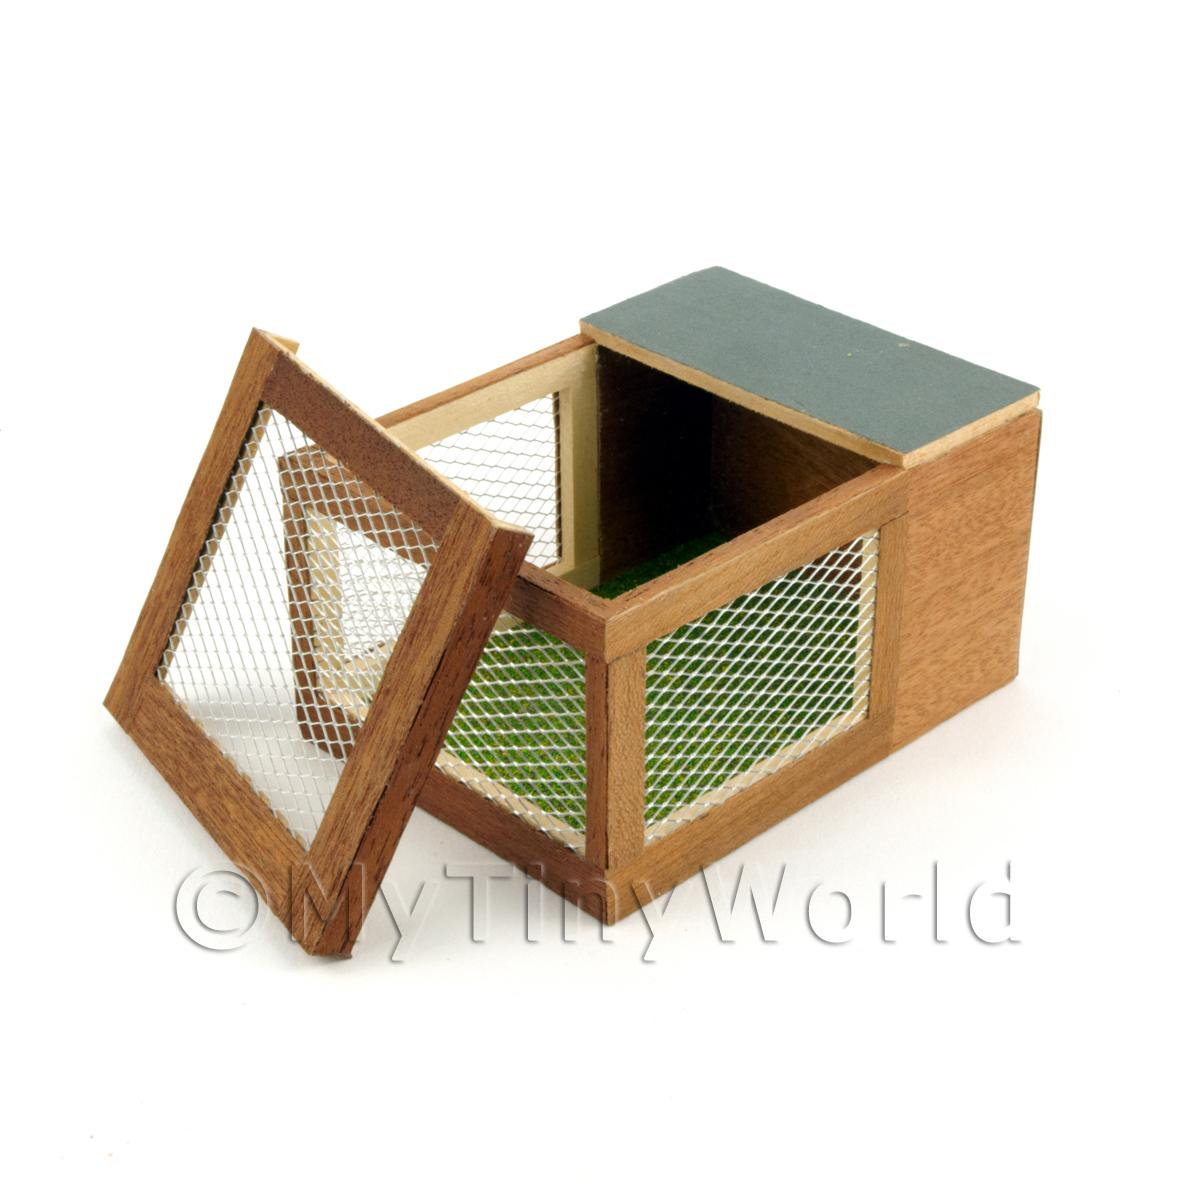 Dolls House Miniature Wooden Rabbit Hutch With Removable Top